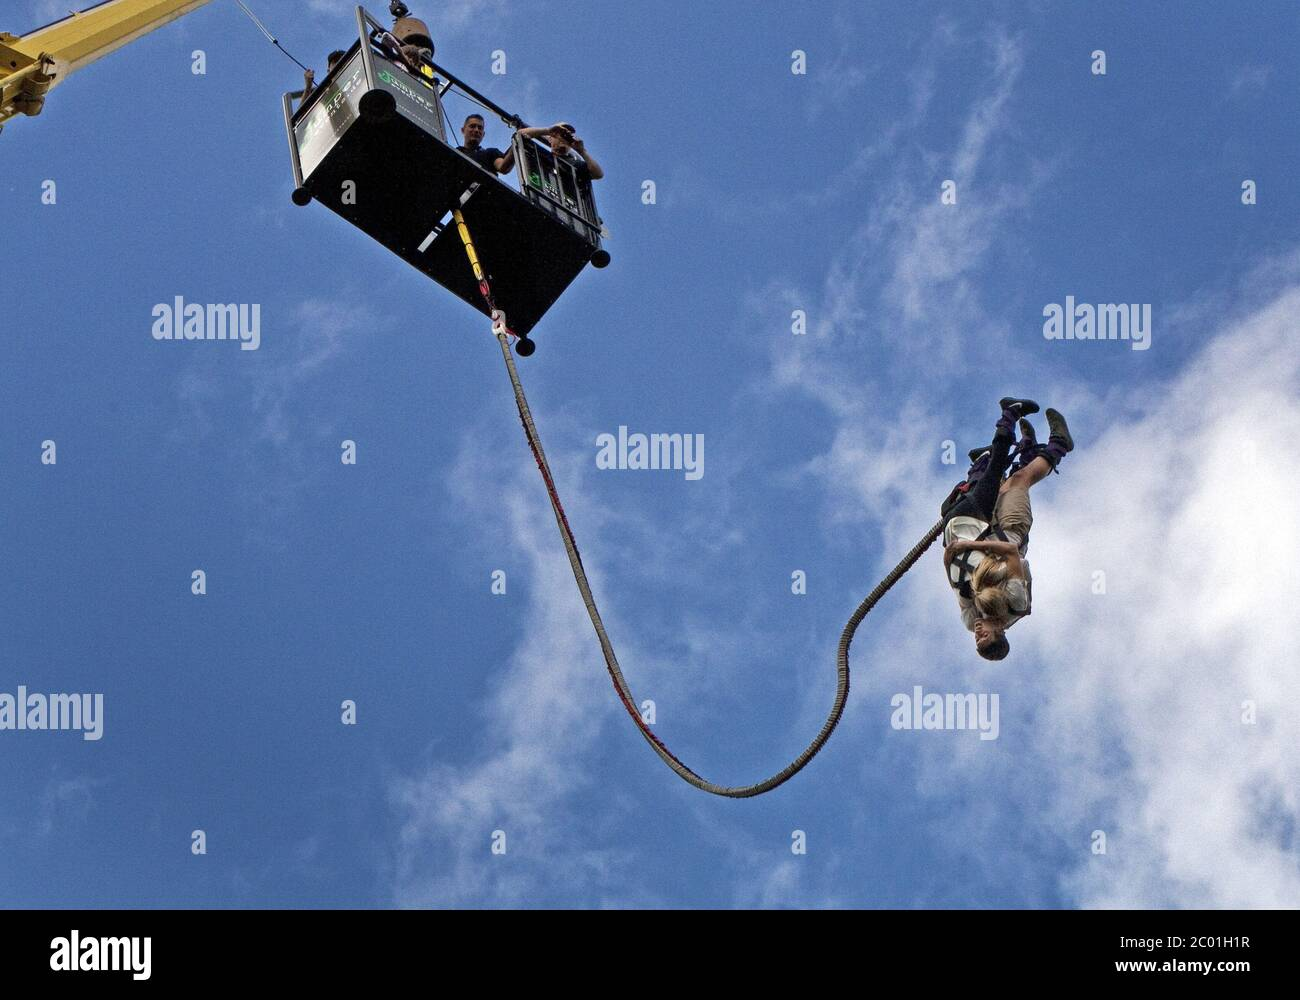 Bungee Jumping, Oberhausen, Germany Stock Photo